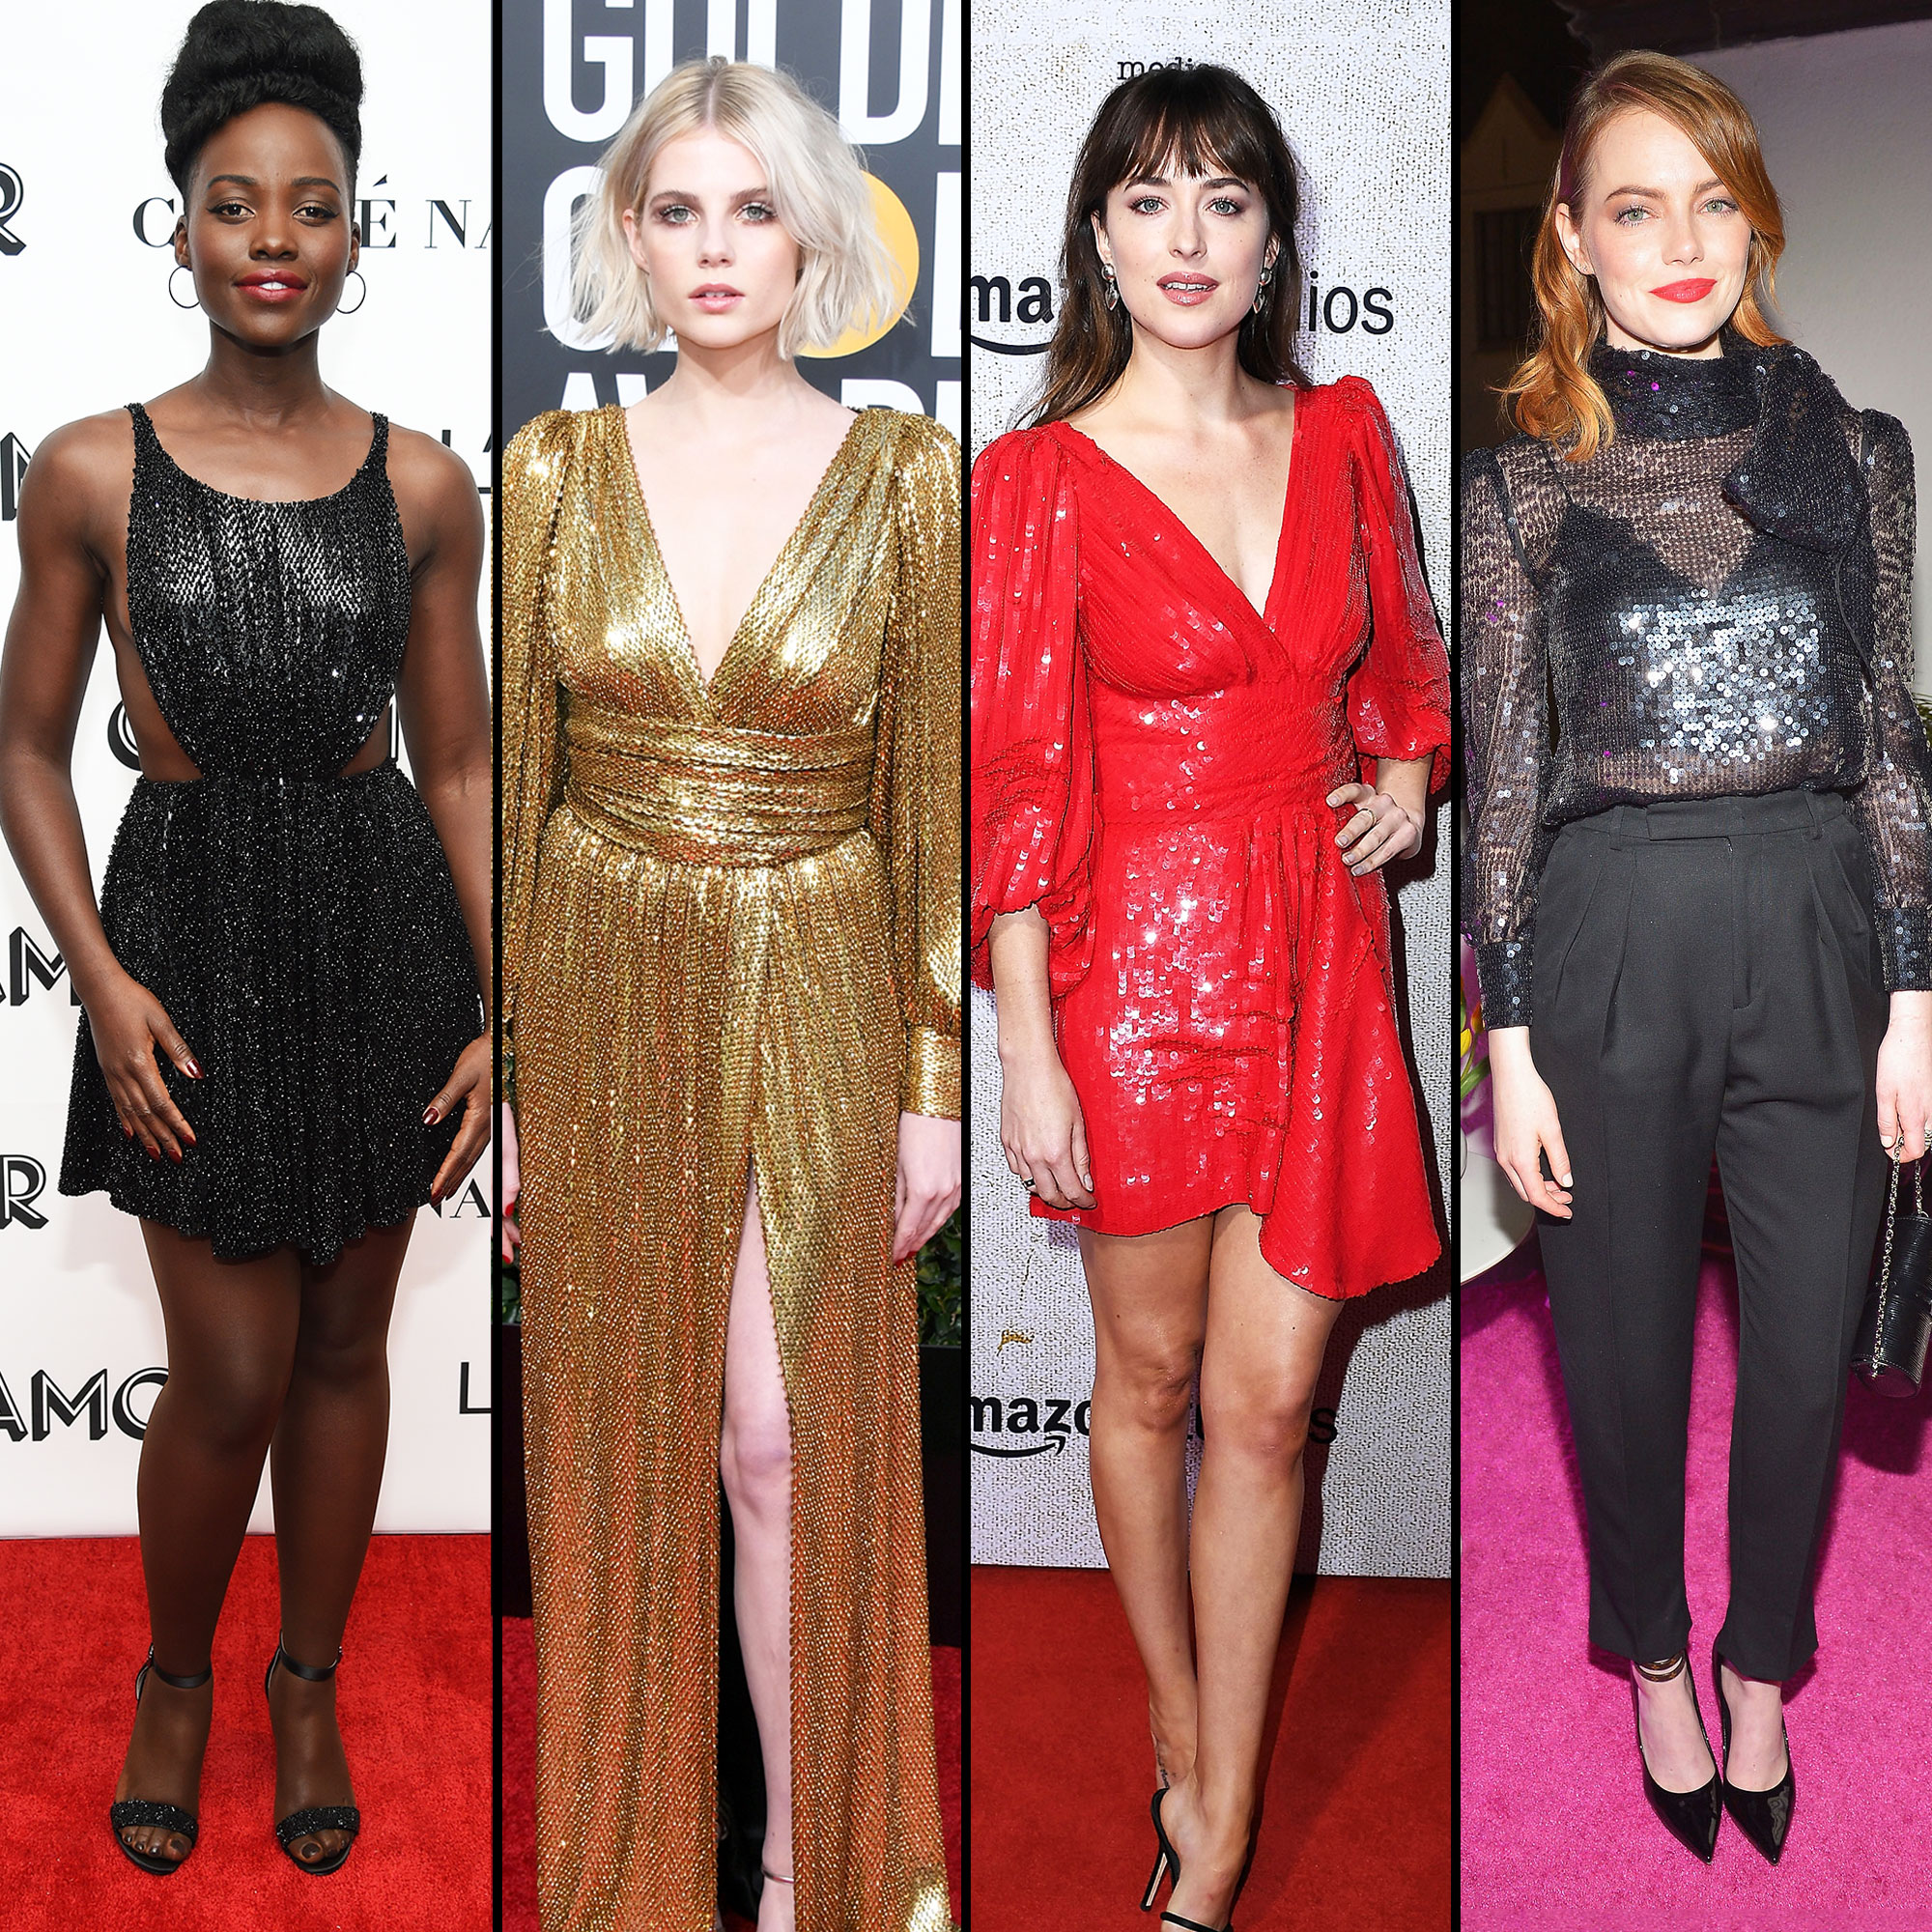 Lupita Nyong'o, Lucy Boynton, Dakota Johnson and Emma Stone - Lupita Nyong'o, Lucy Boynton, Dakota Johnson and Emma Stone